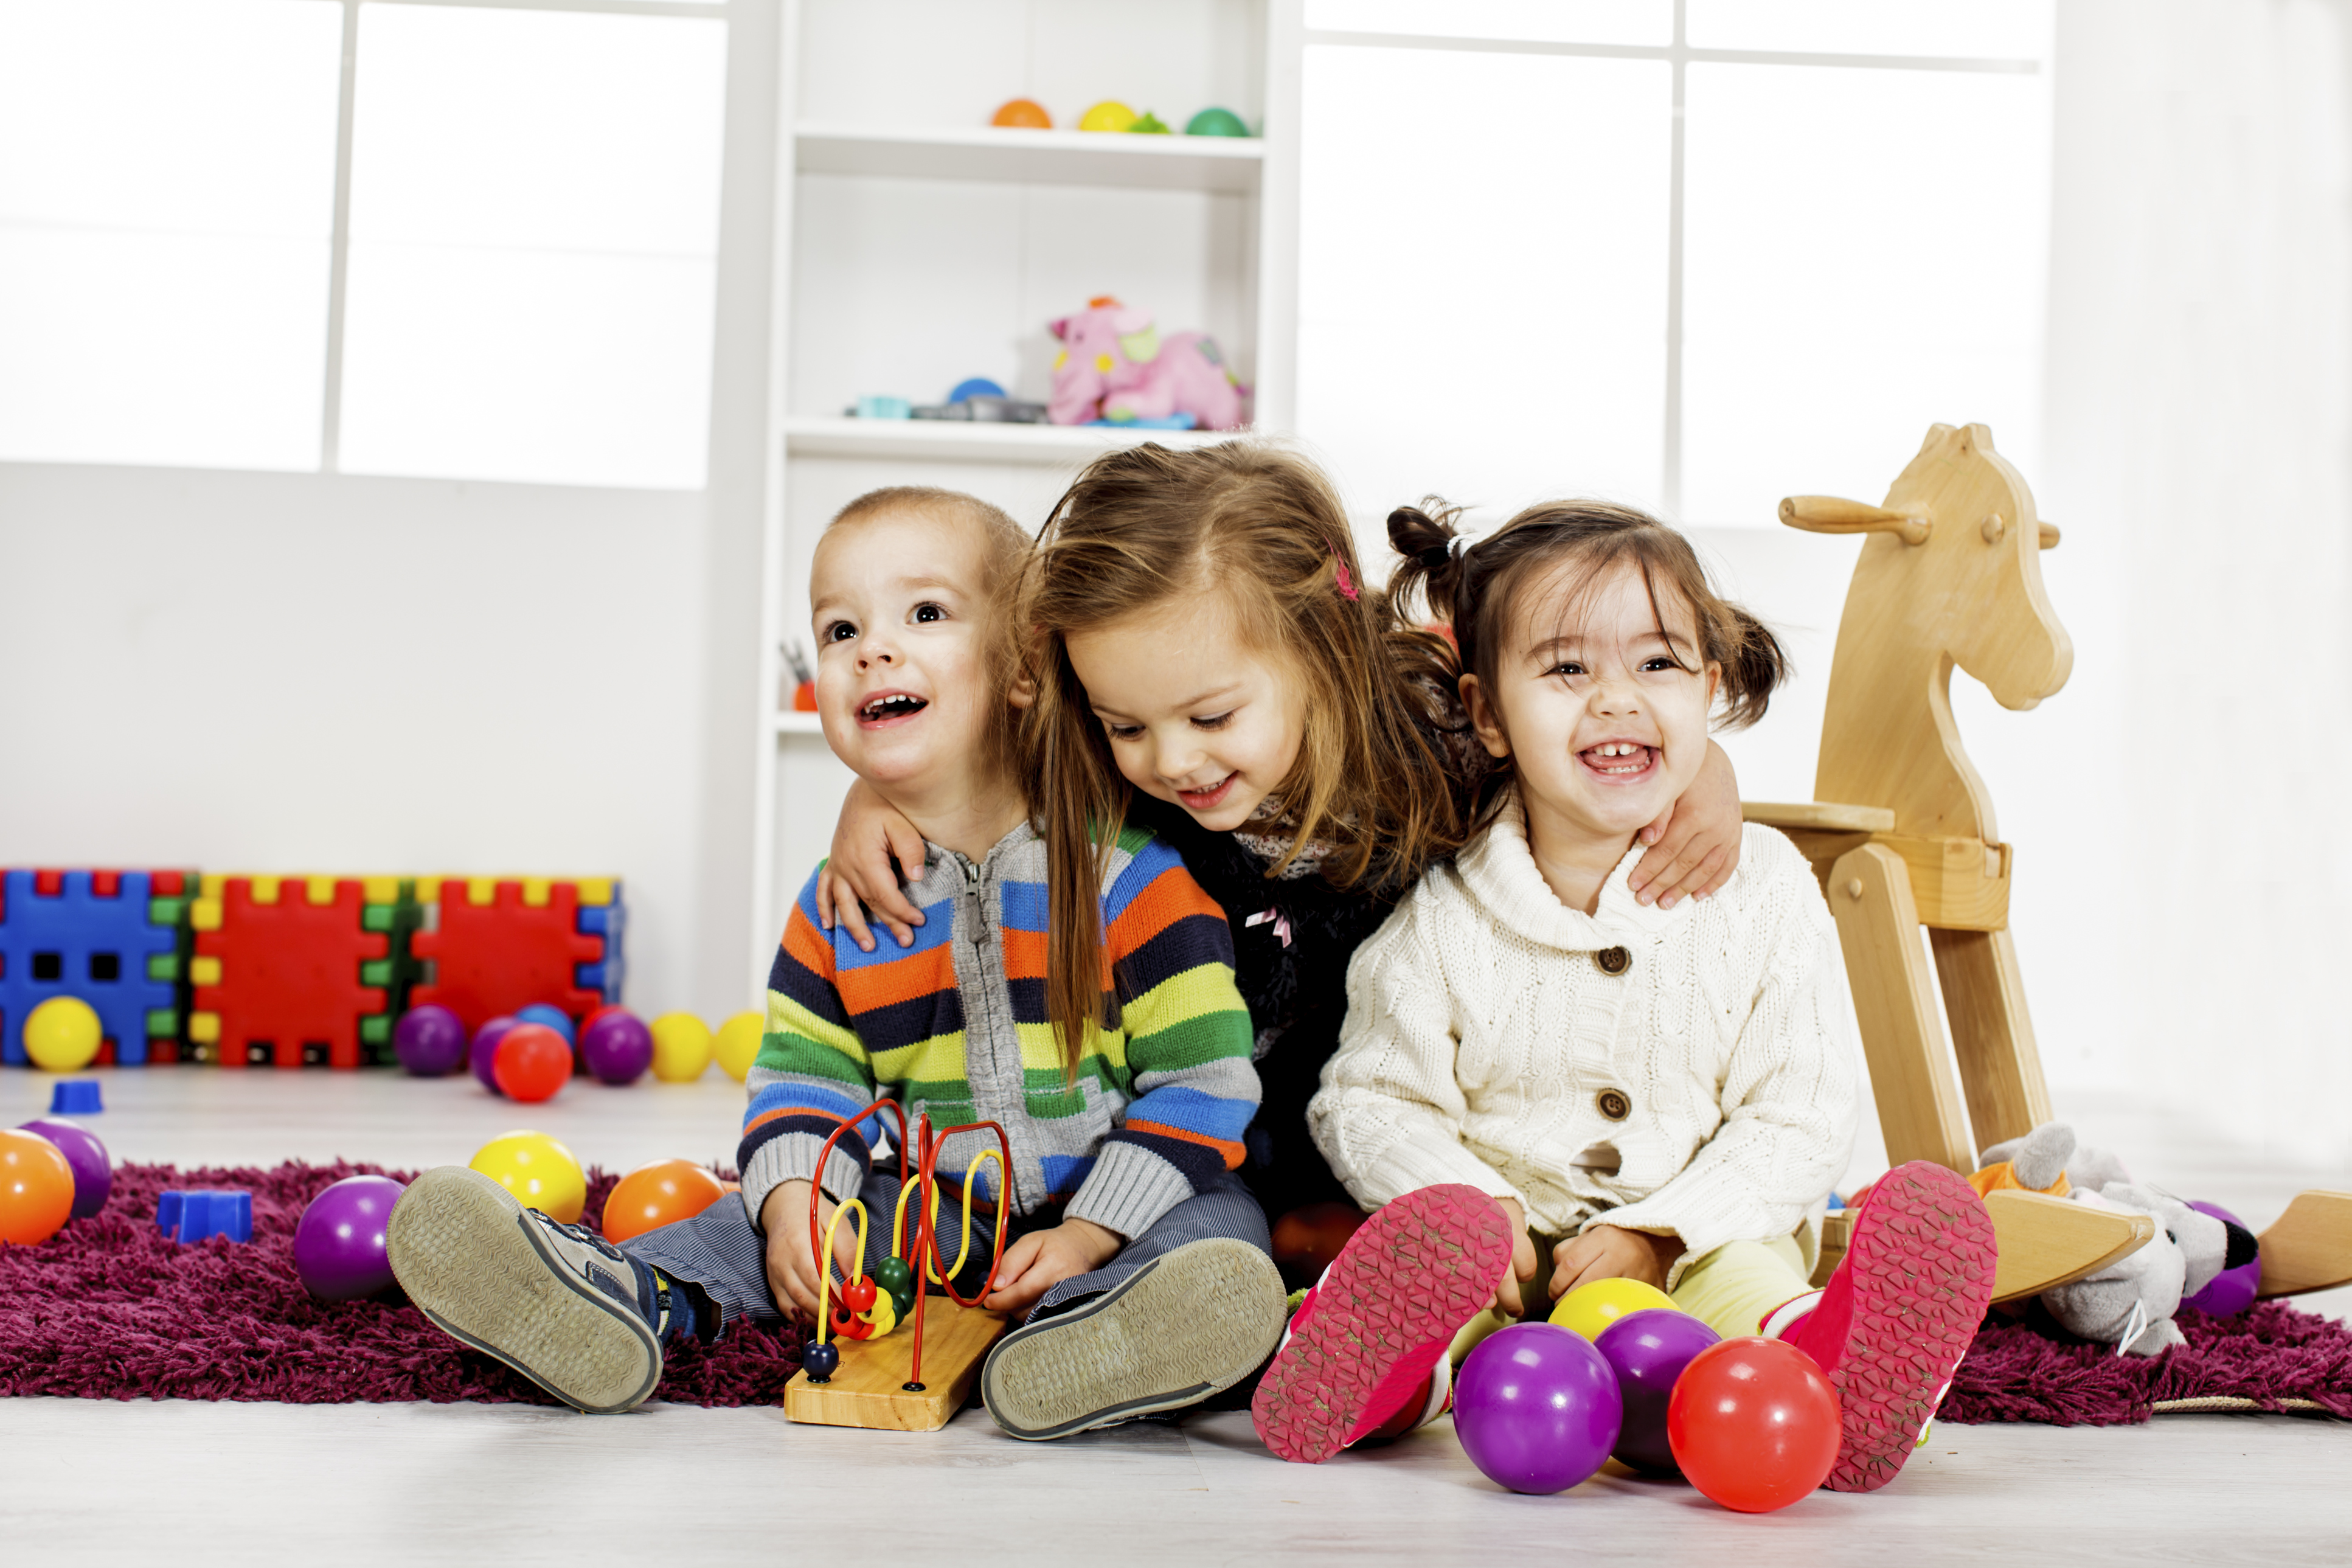 5 Reasons Play is Important for Children